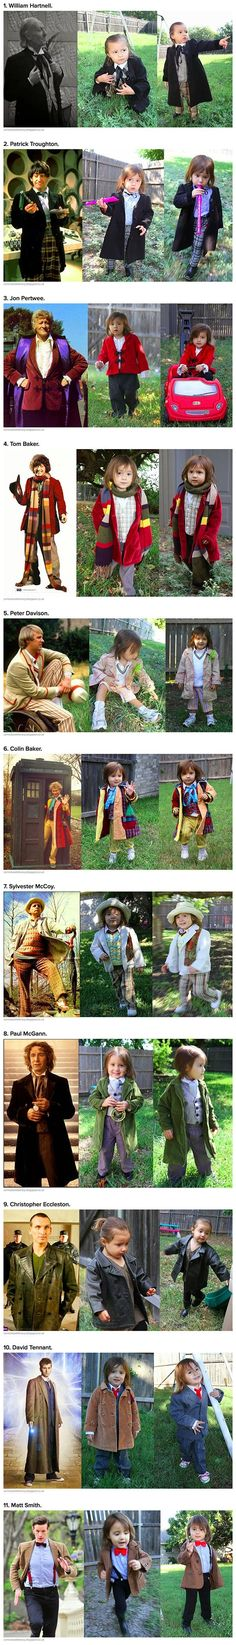 OH. MY. GOSH. That is the BESTEST cosplay I have ever seen. That little girl has freaking AWESOME parents!!